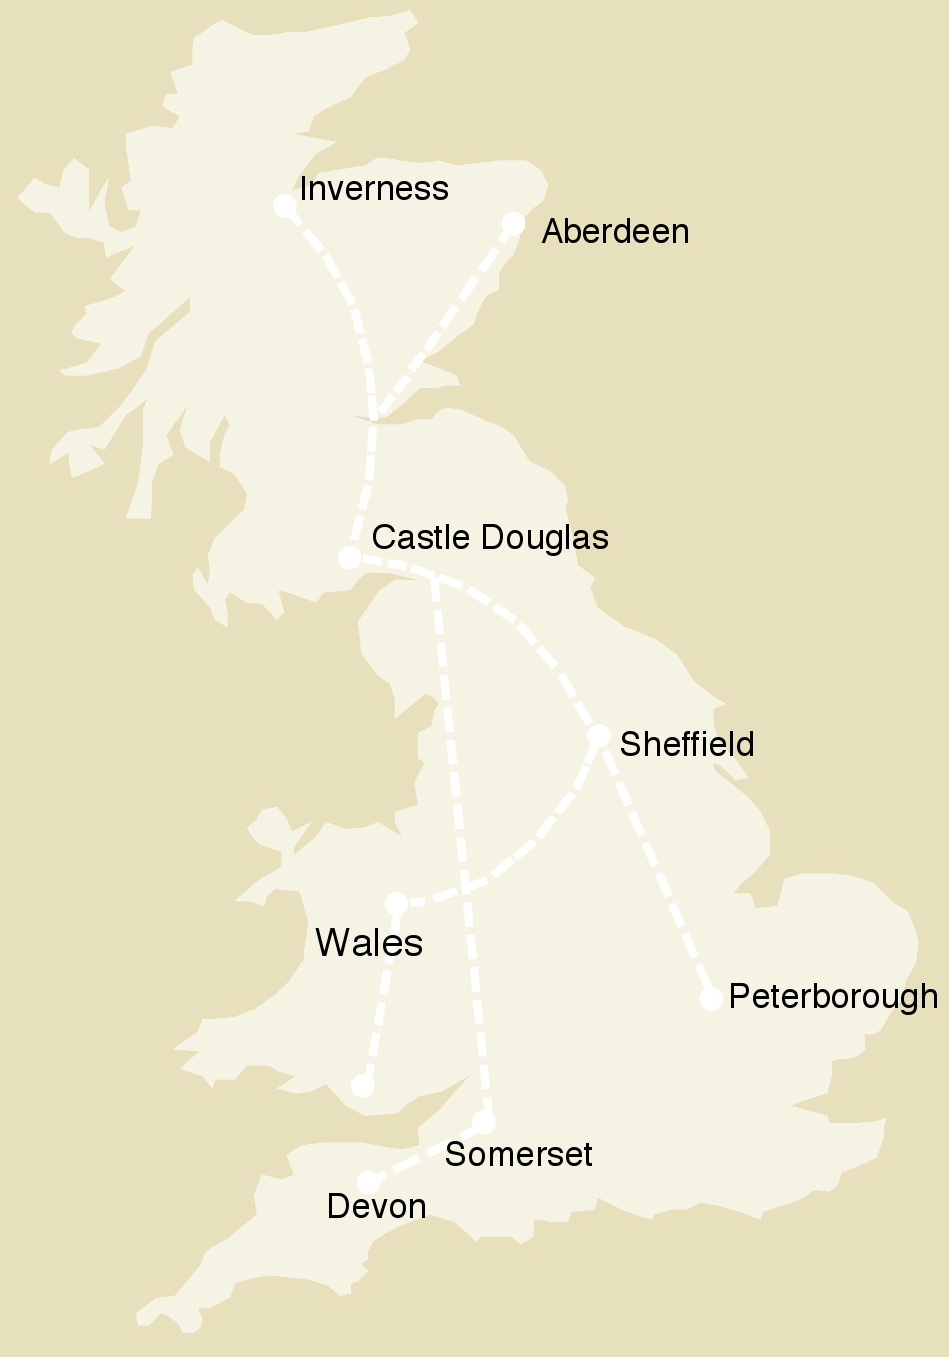 Map of Great Britain showing Castle Douglas and the routes travelled by our lorries